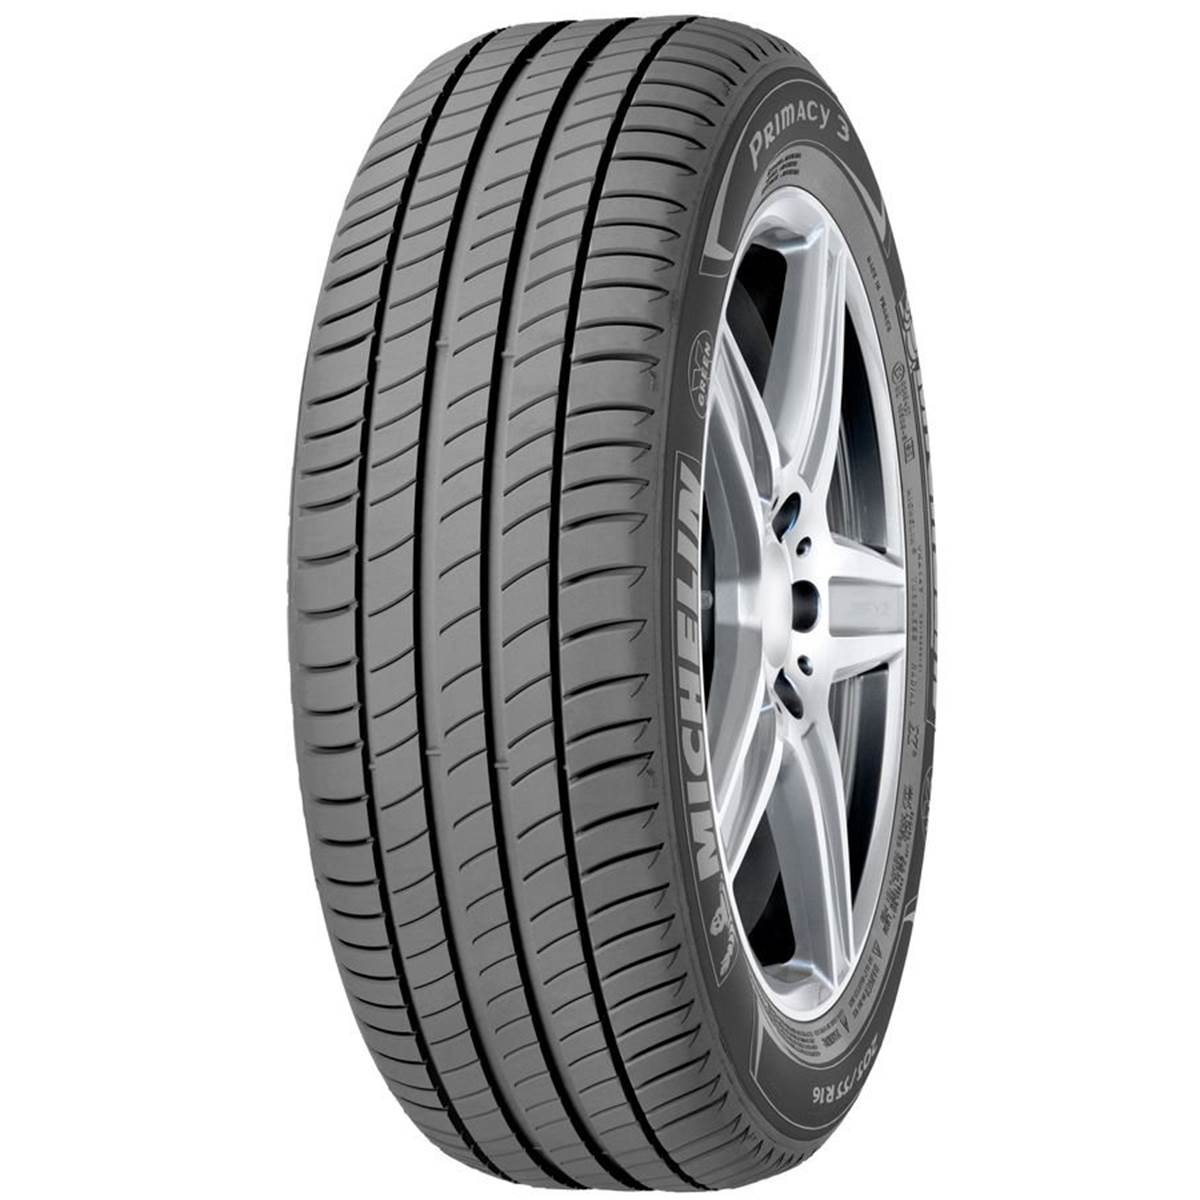 Pneu MICHELIN 225/50R16 92V Primacy 3